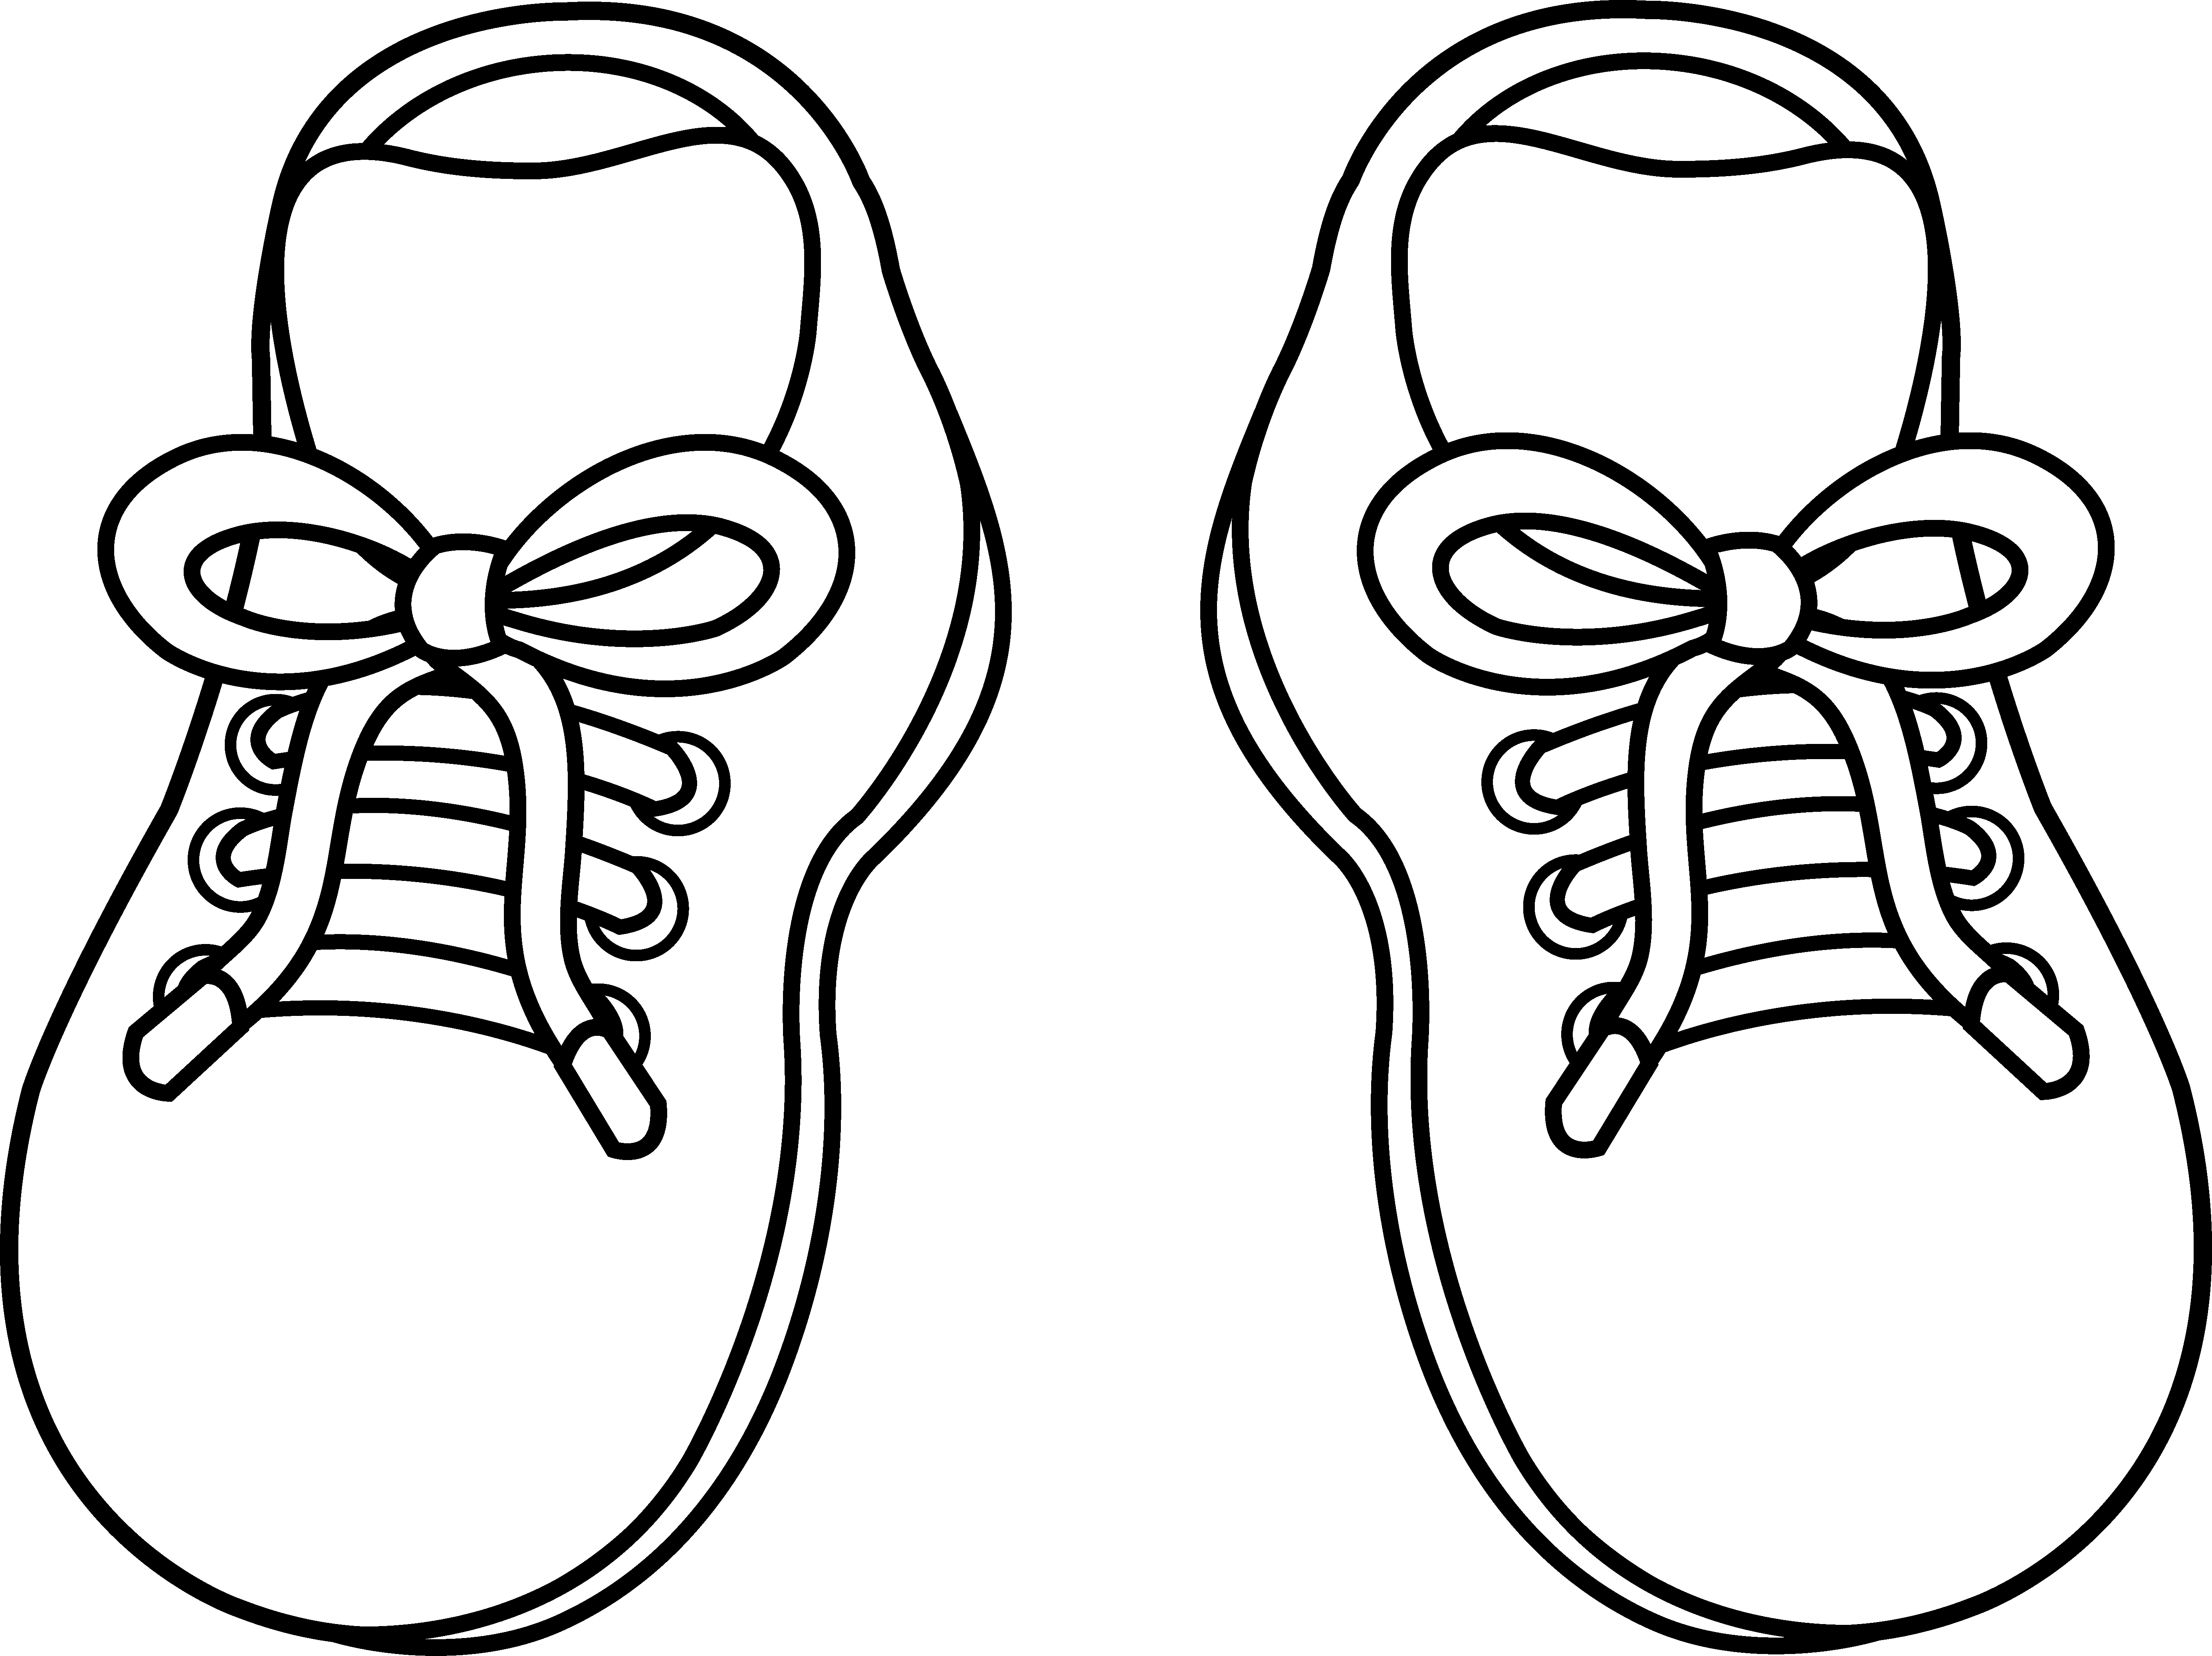 Basketball coloring page clipart jpg freeuse download Shoe Drawing For Kids at GetDrawings.com | Free for personal use ... jpg freeuse download